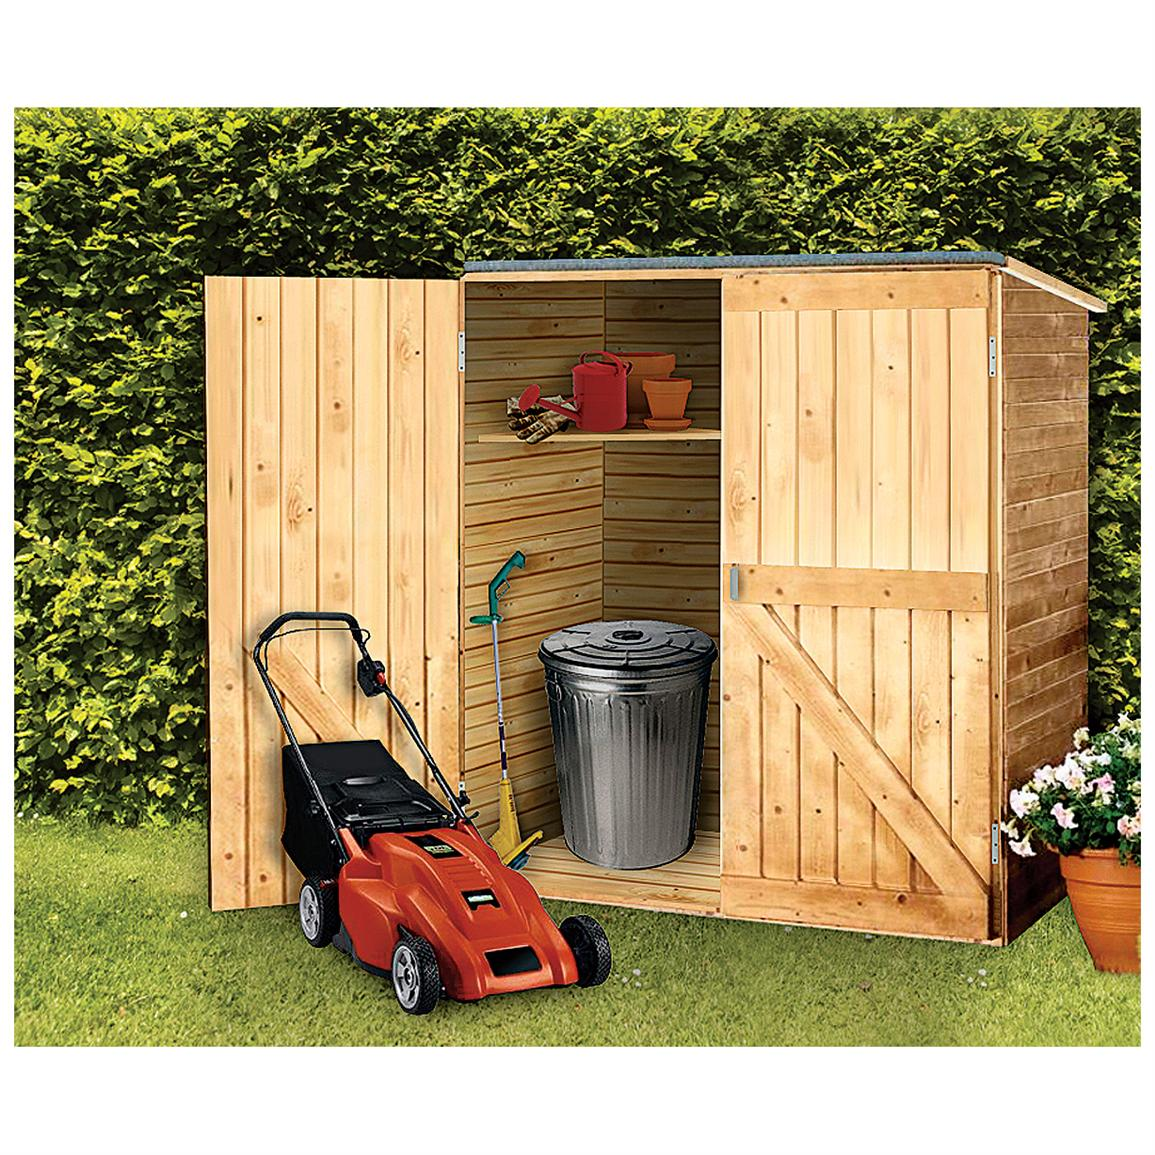 Wooden Storage Shed | Shed Blueprints